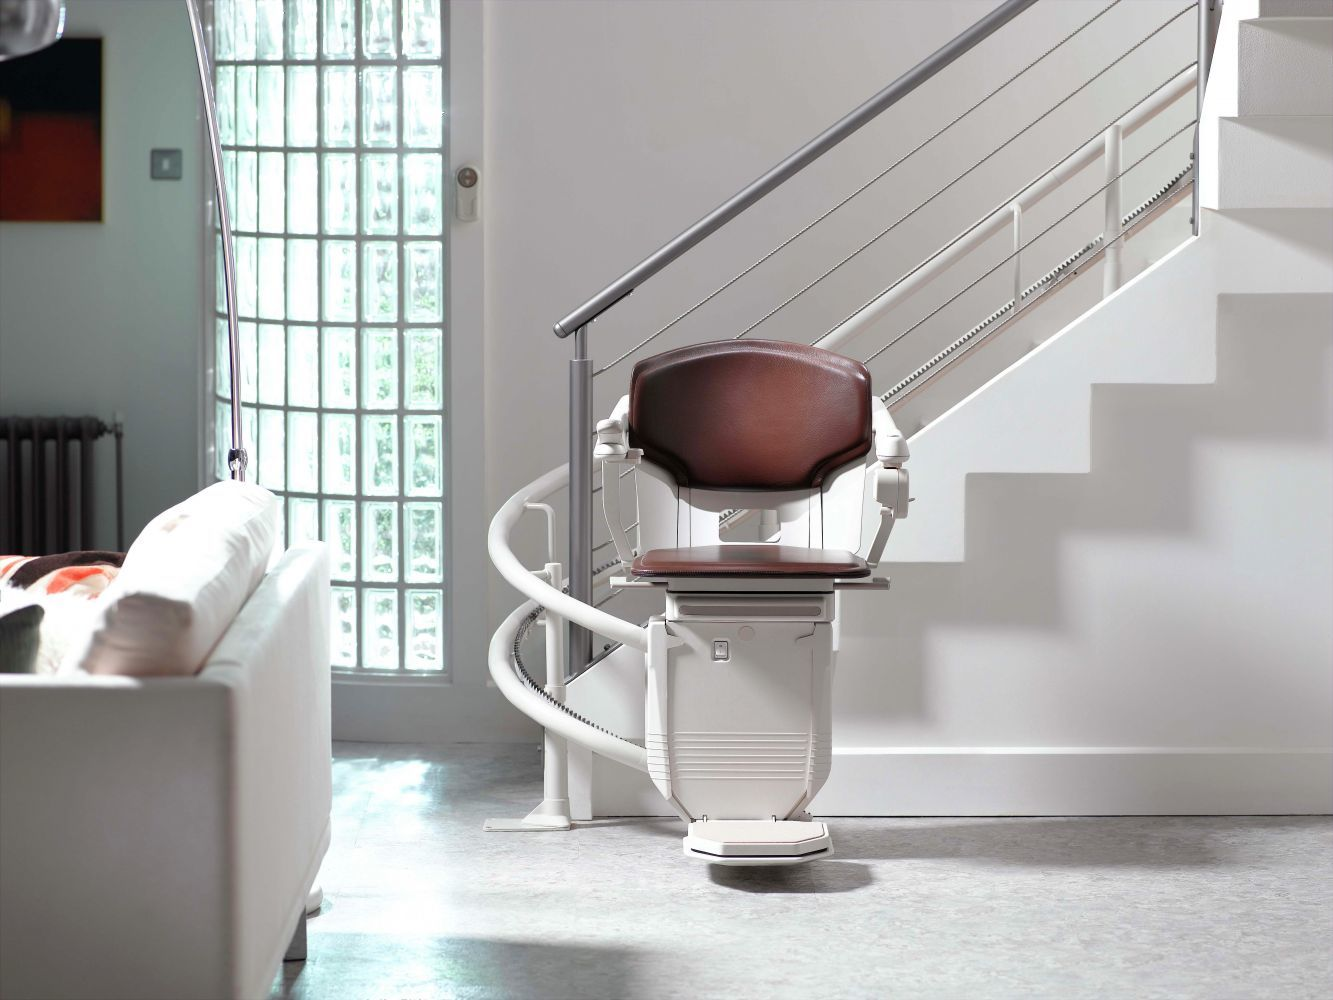 chair lifts for stairs with landings covers wedding diy independence 2011 stairlifts